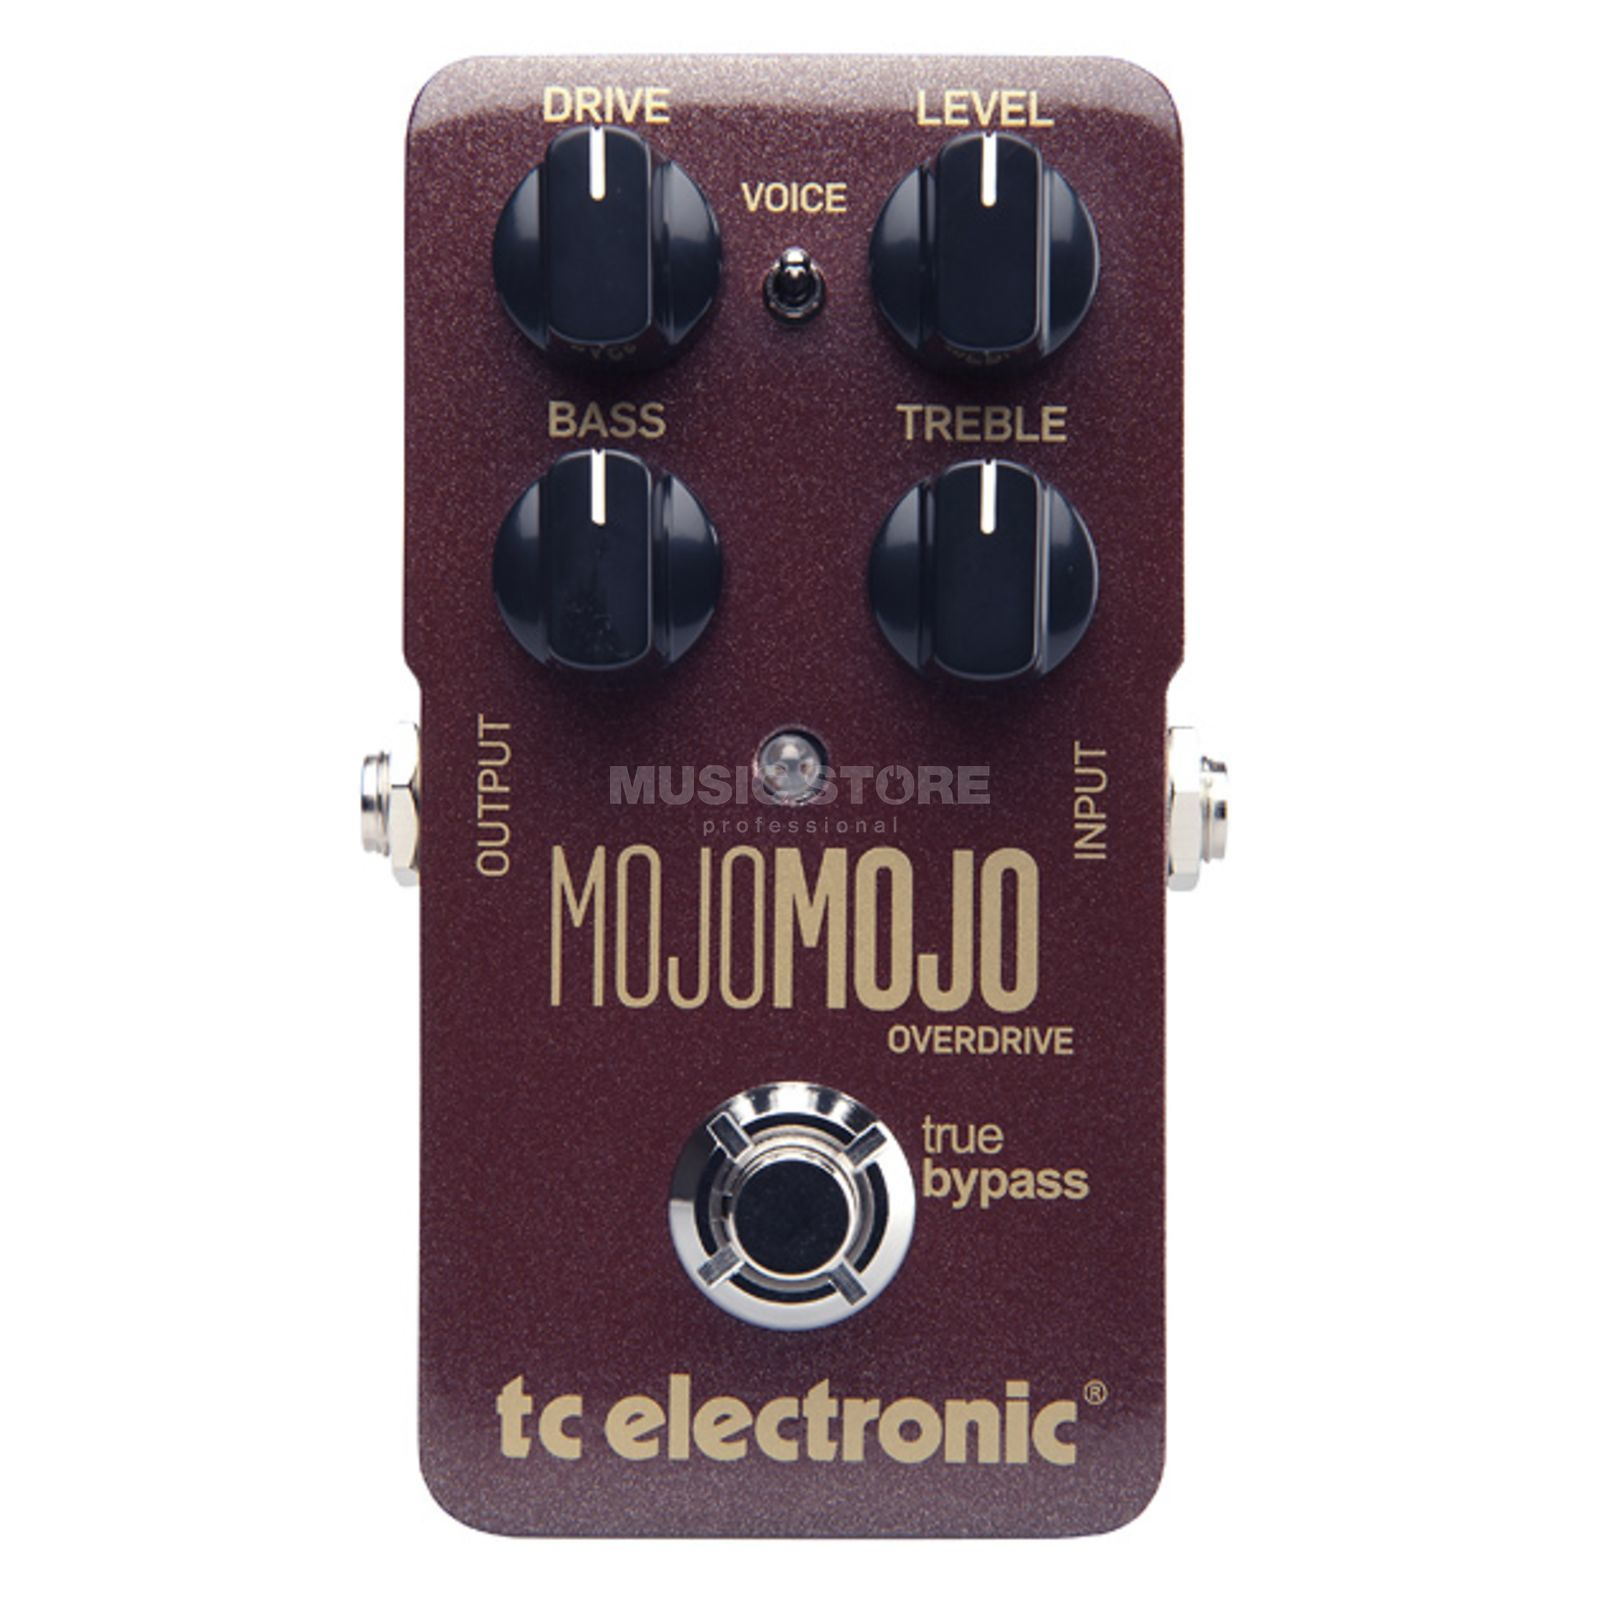 TC Electronic MojoMojo Overdrive Guitar Effe cts Pedal   Produktbillede